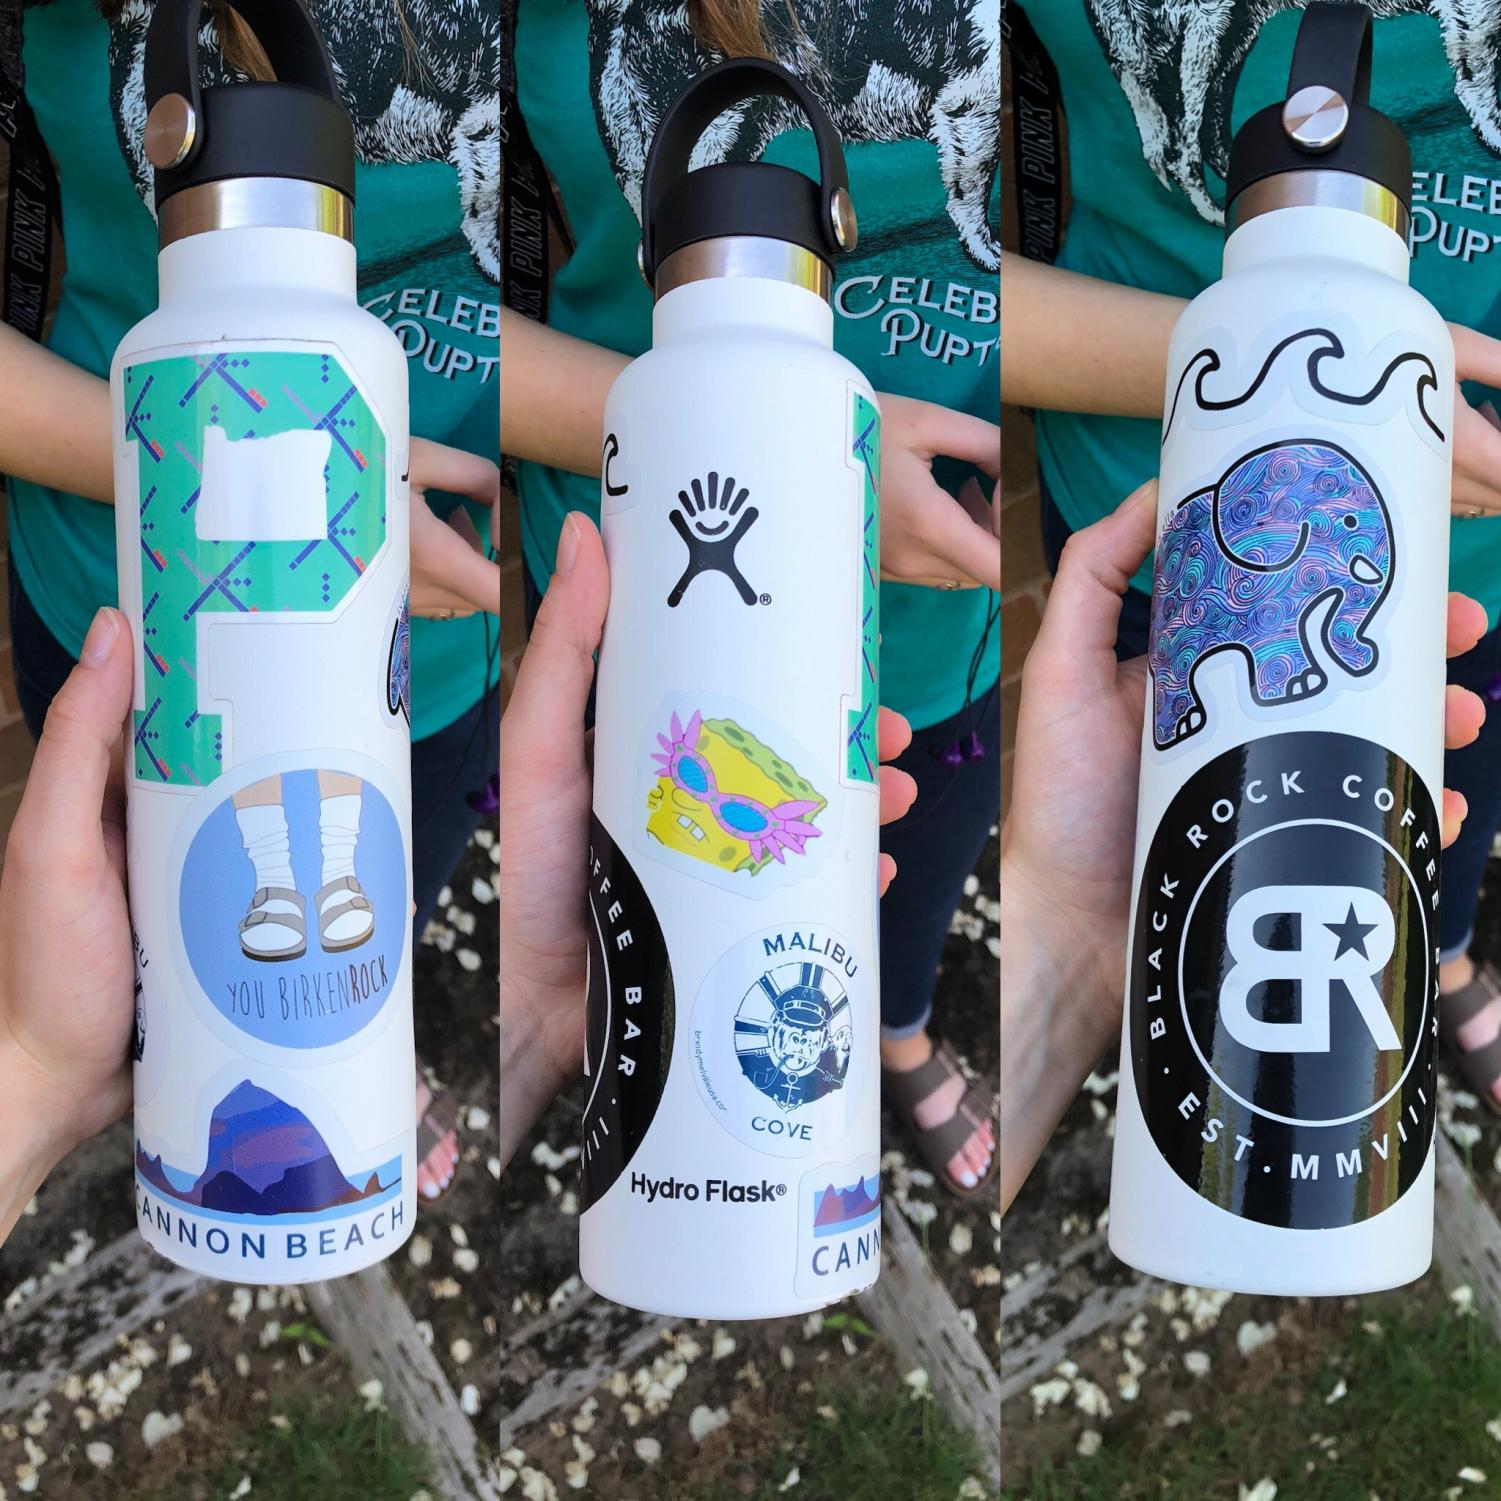 The+Captivating+and+Colorful+Water+Bottles+of+La+Salle